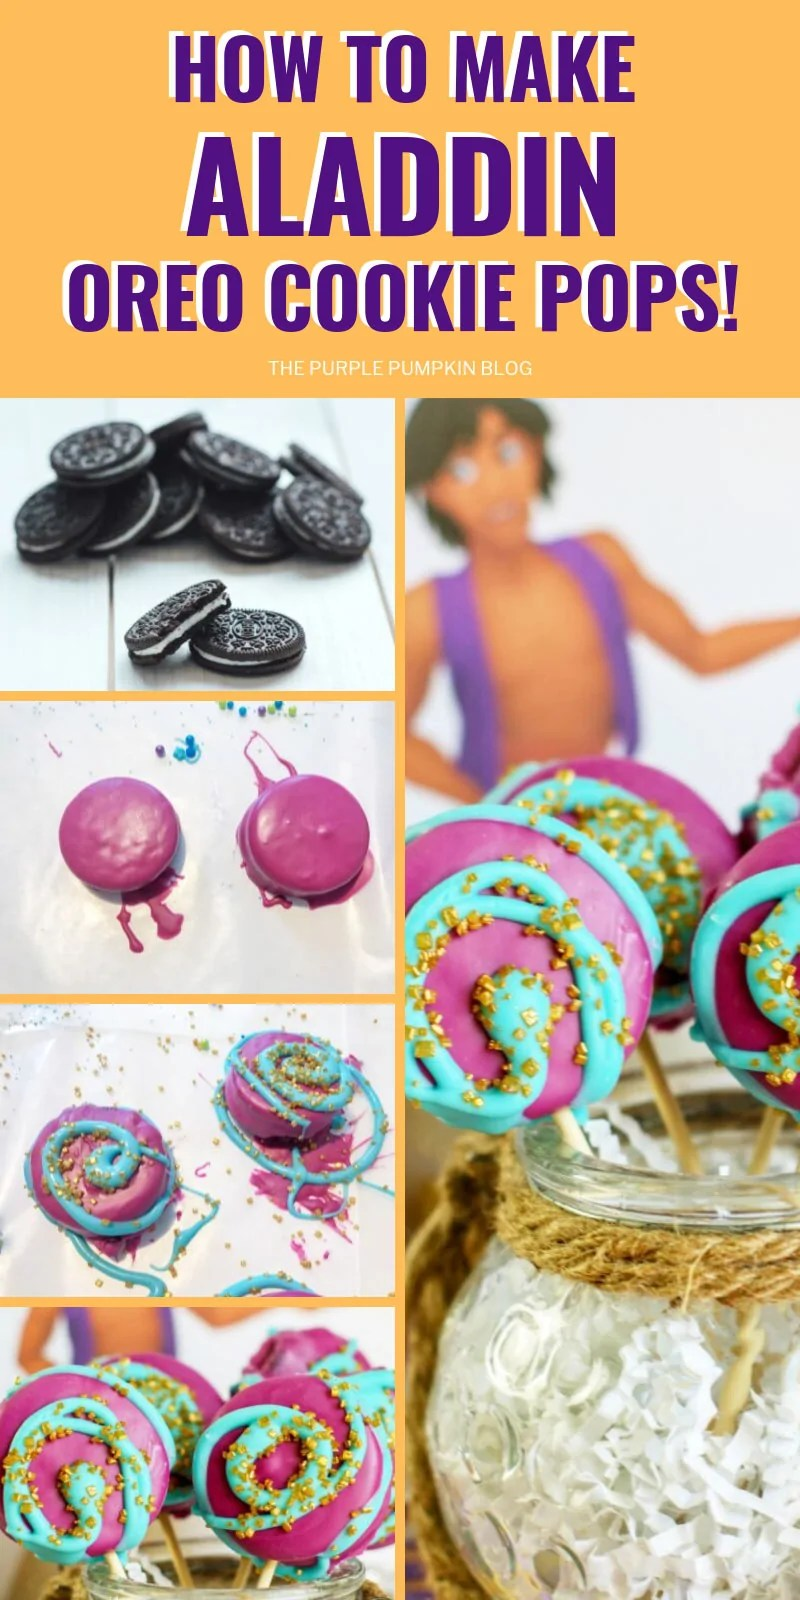 Multiple images showing the steps to making aladdin oreo cookie pops